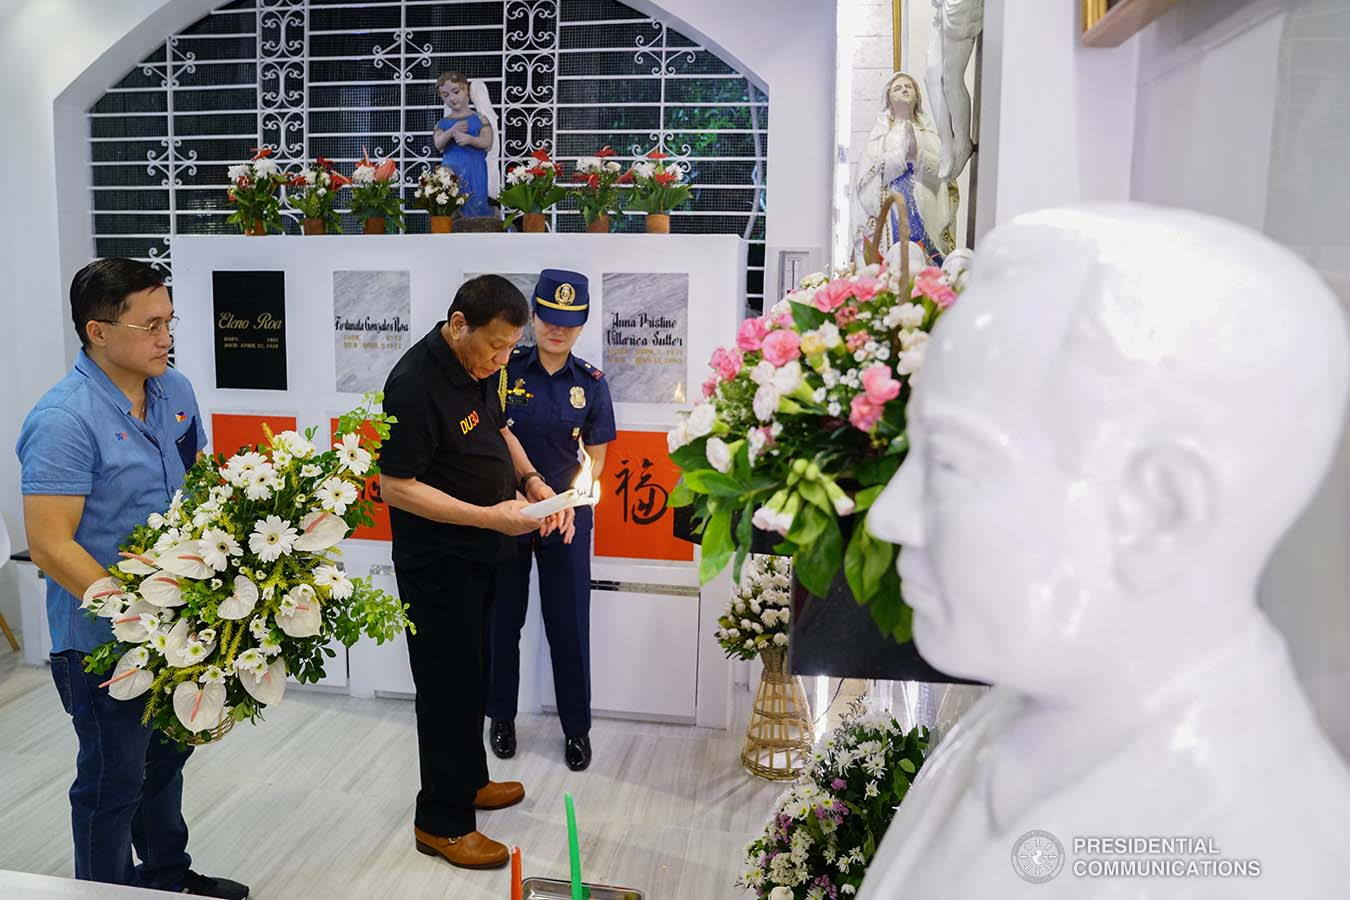 President Rodrigo Roa Duterte lights a candle to honor the memory of his mother Soledad as he visits her grave at the Roman Catholic Cemetery in Davao City on October 31, 2019. JOEY DALUMPINES/PRESIDENTIAL PHOTO